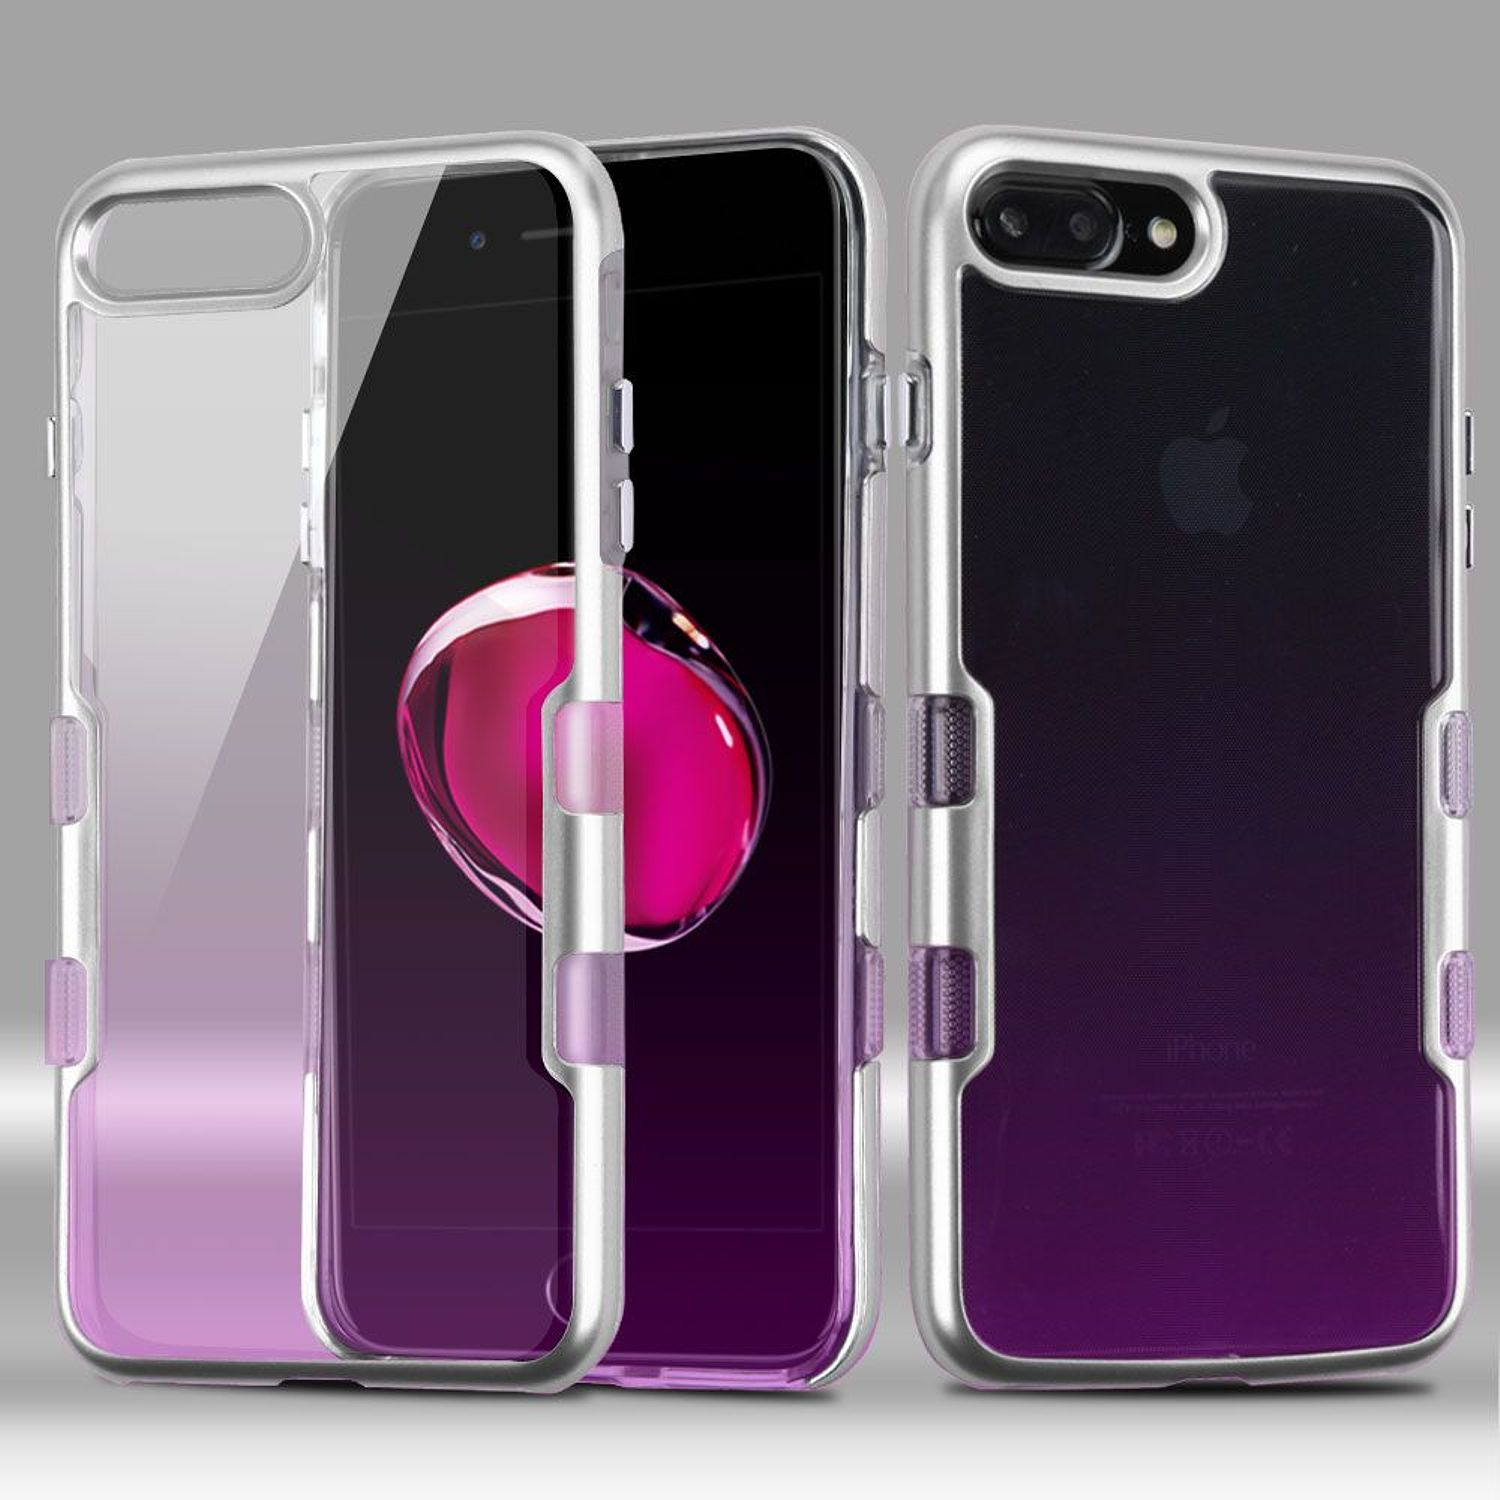 insten Tuff Dual Layer [Shock Absorbing] Hybrid Crystal Hard Plastic/Soft TPU Rubber Case Cover For Apple iPhone 8 Plus / iPhone 7 Plus, Purple/Silver